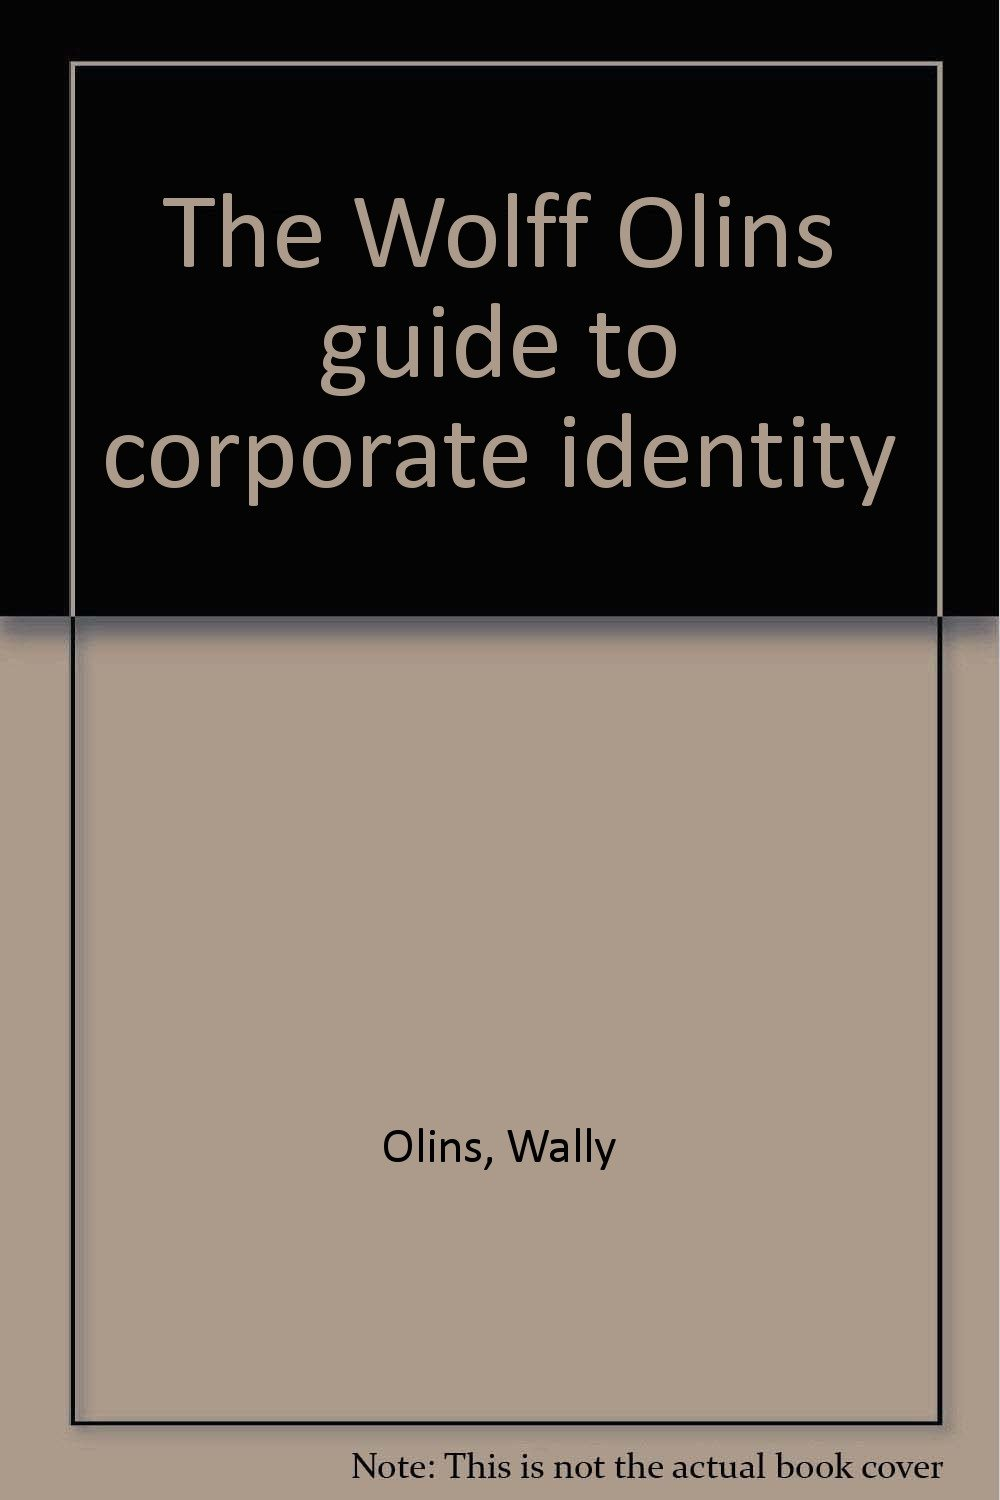 The Wolff Olins guide to corporate identity: Wally Olins: 9780950925707:  Amazon.com: Books